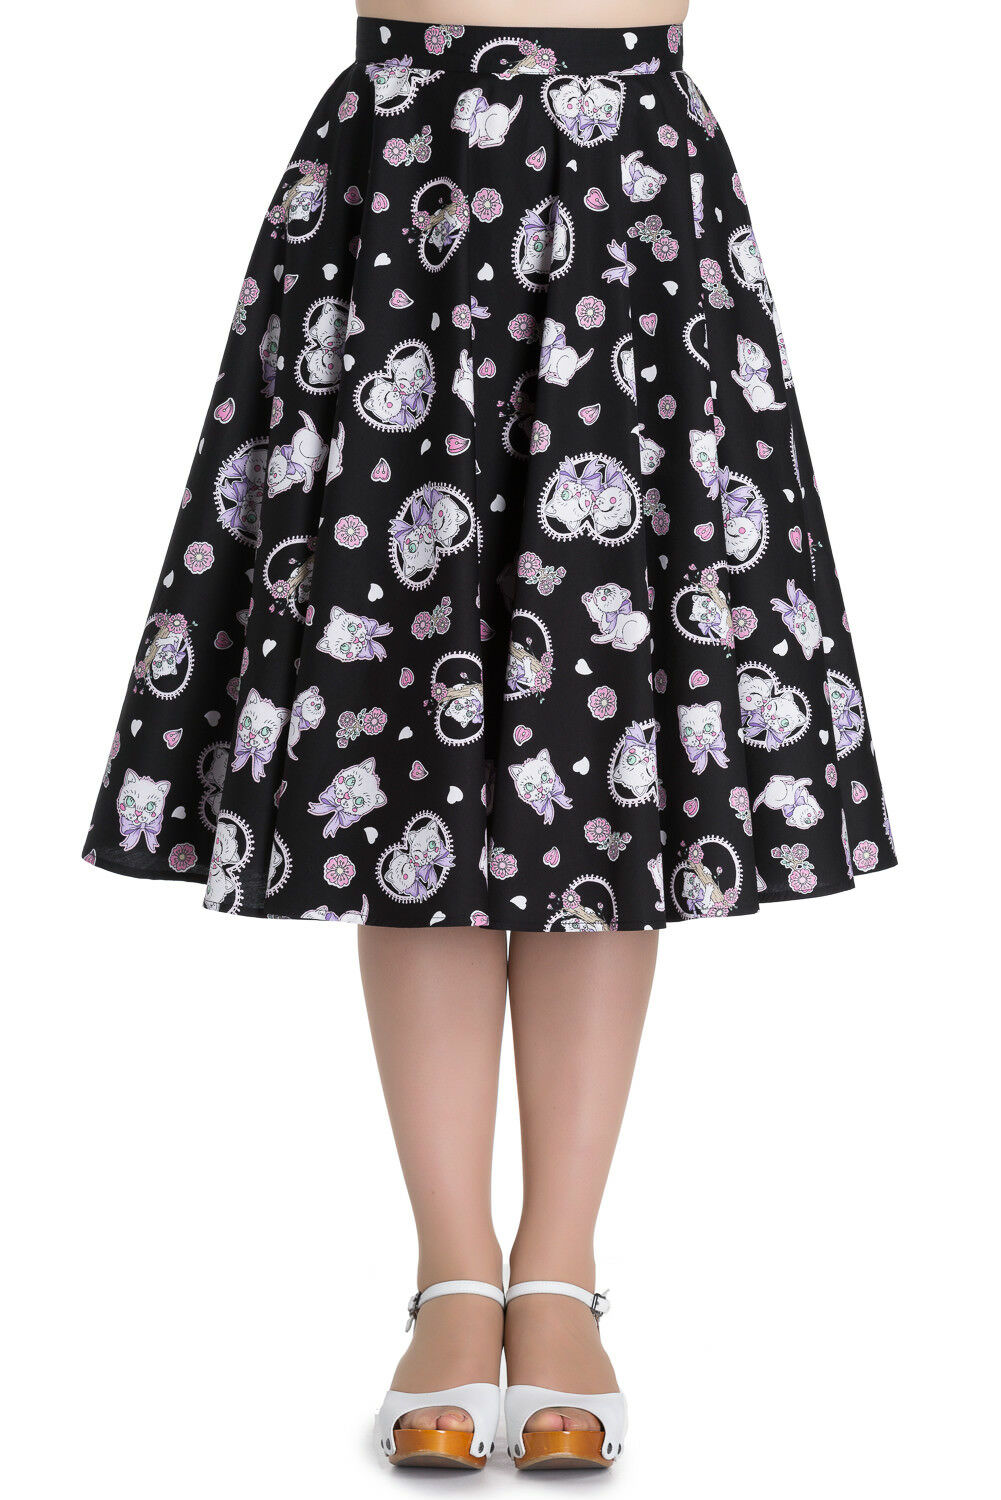 Hell Bunny Kitty Blossom Kawaii Kittens and Floral Print Circle Skirt